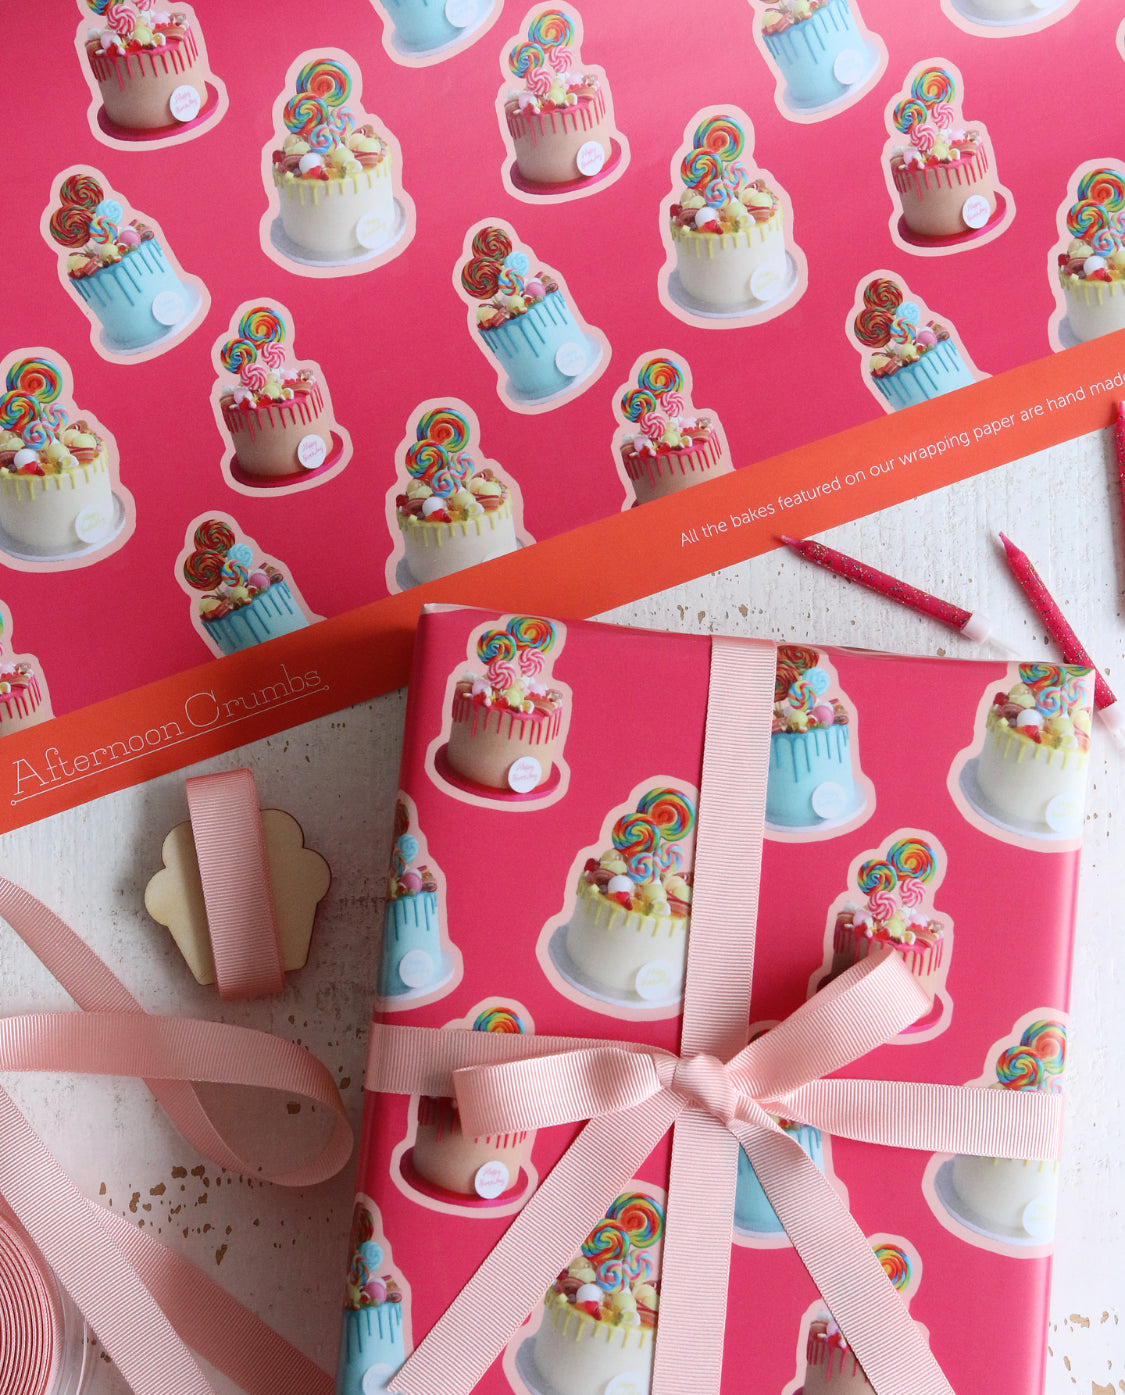 Sweetie Cake Pink Wrapping Paper with logo tied with Ribbon